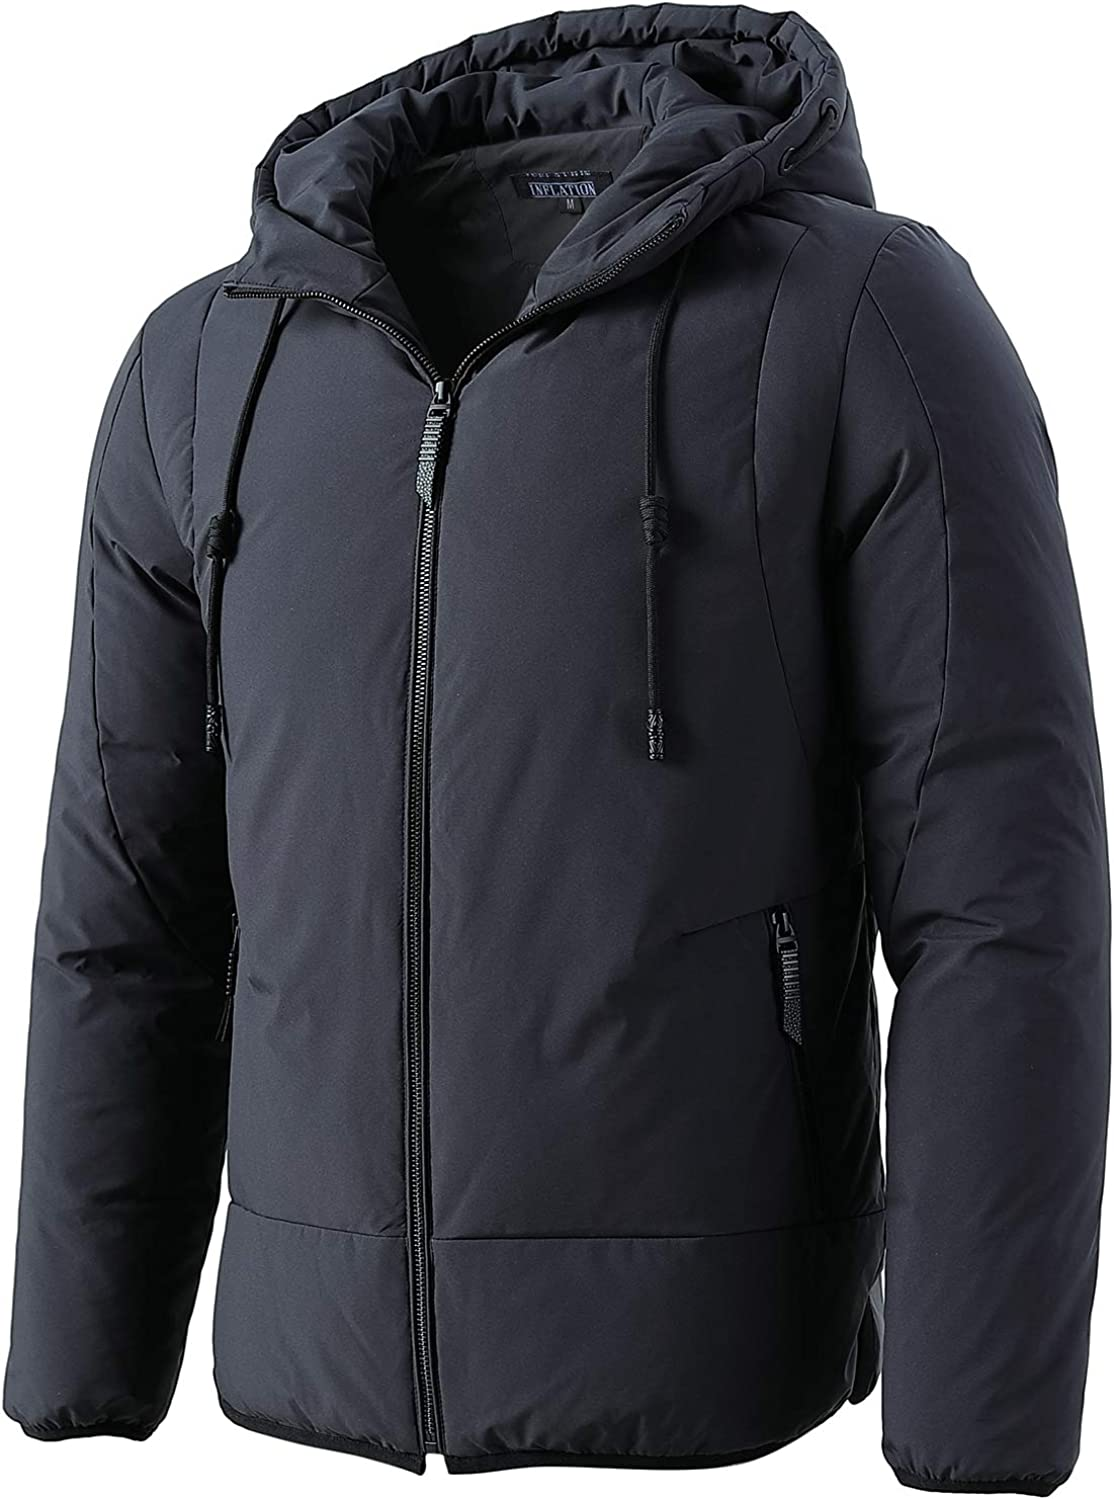 INFLATION Mens Lightweight Water-Resistant Packable Puffer Hooded Down Jacket